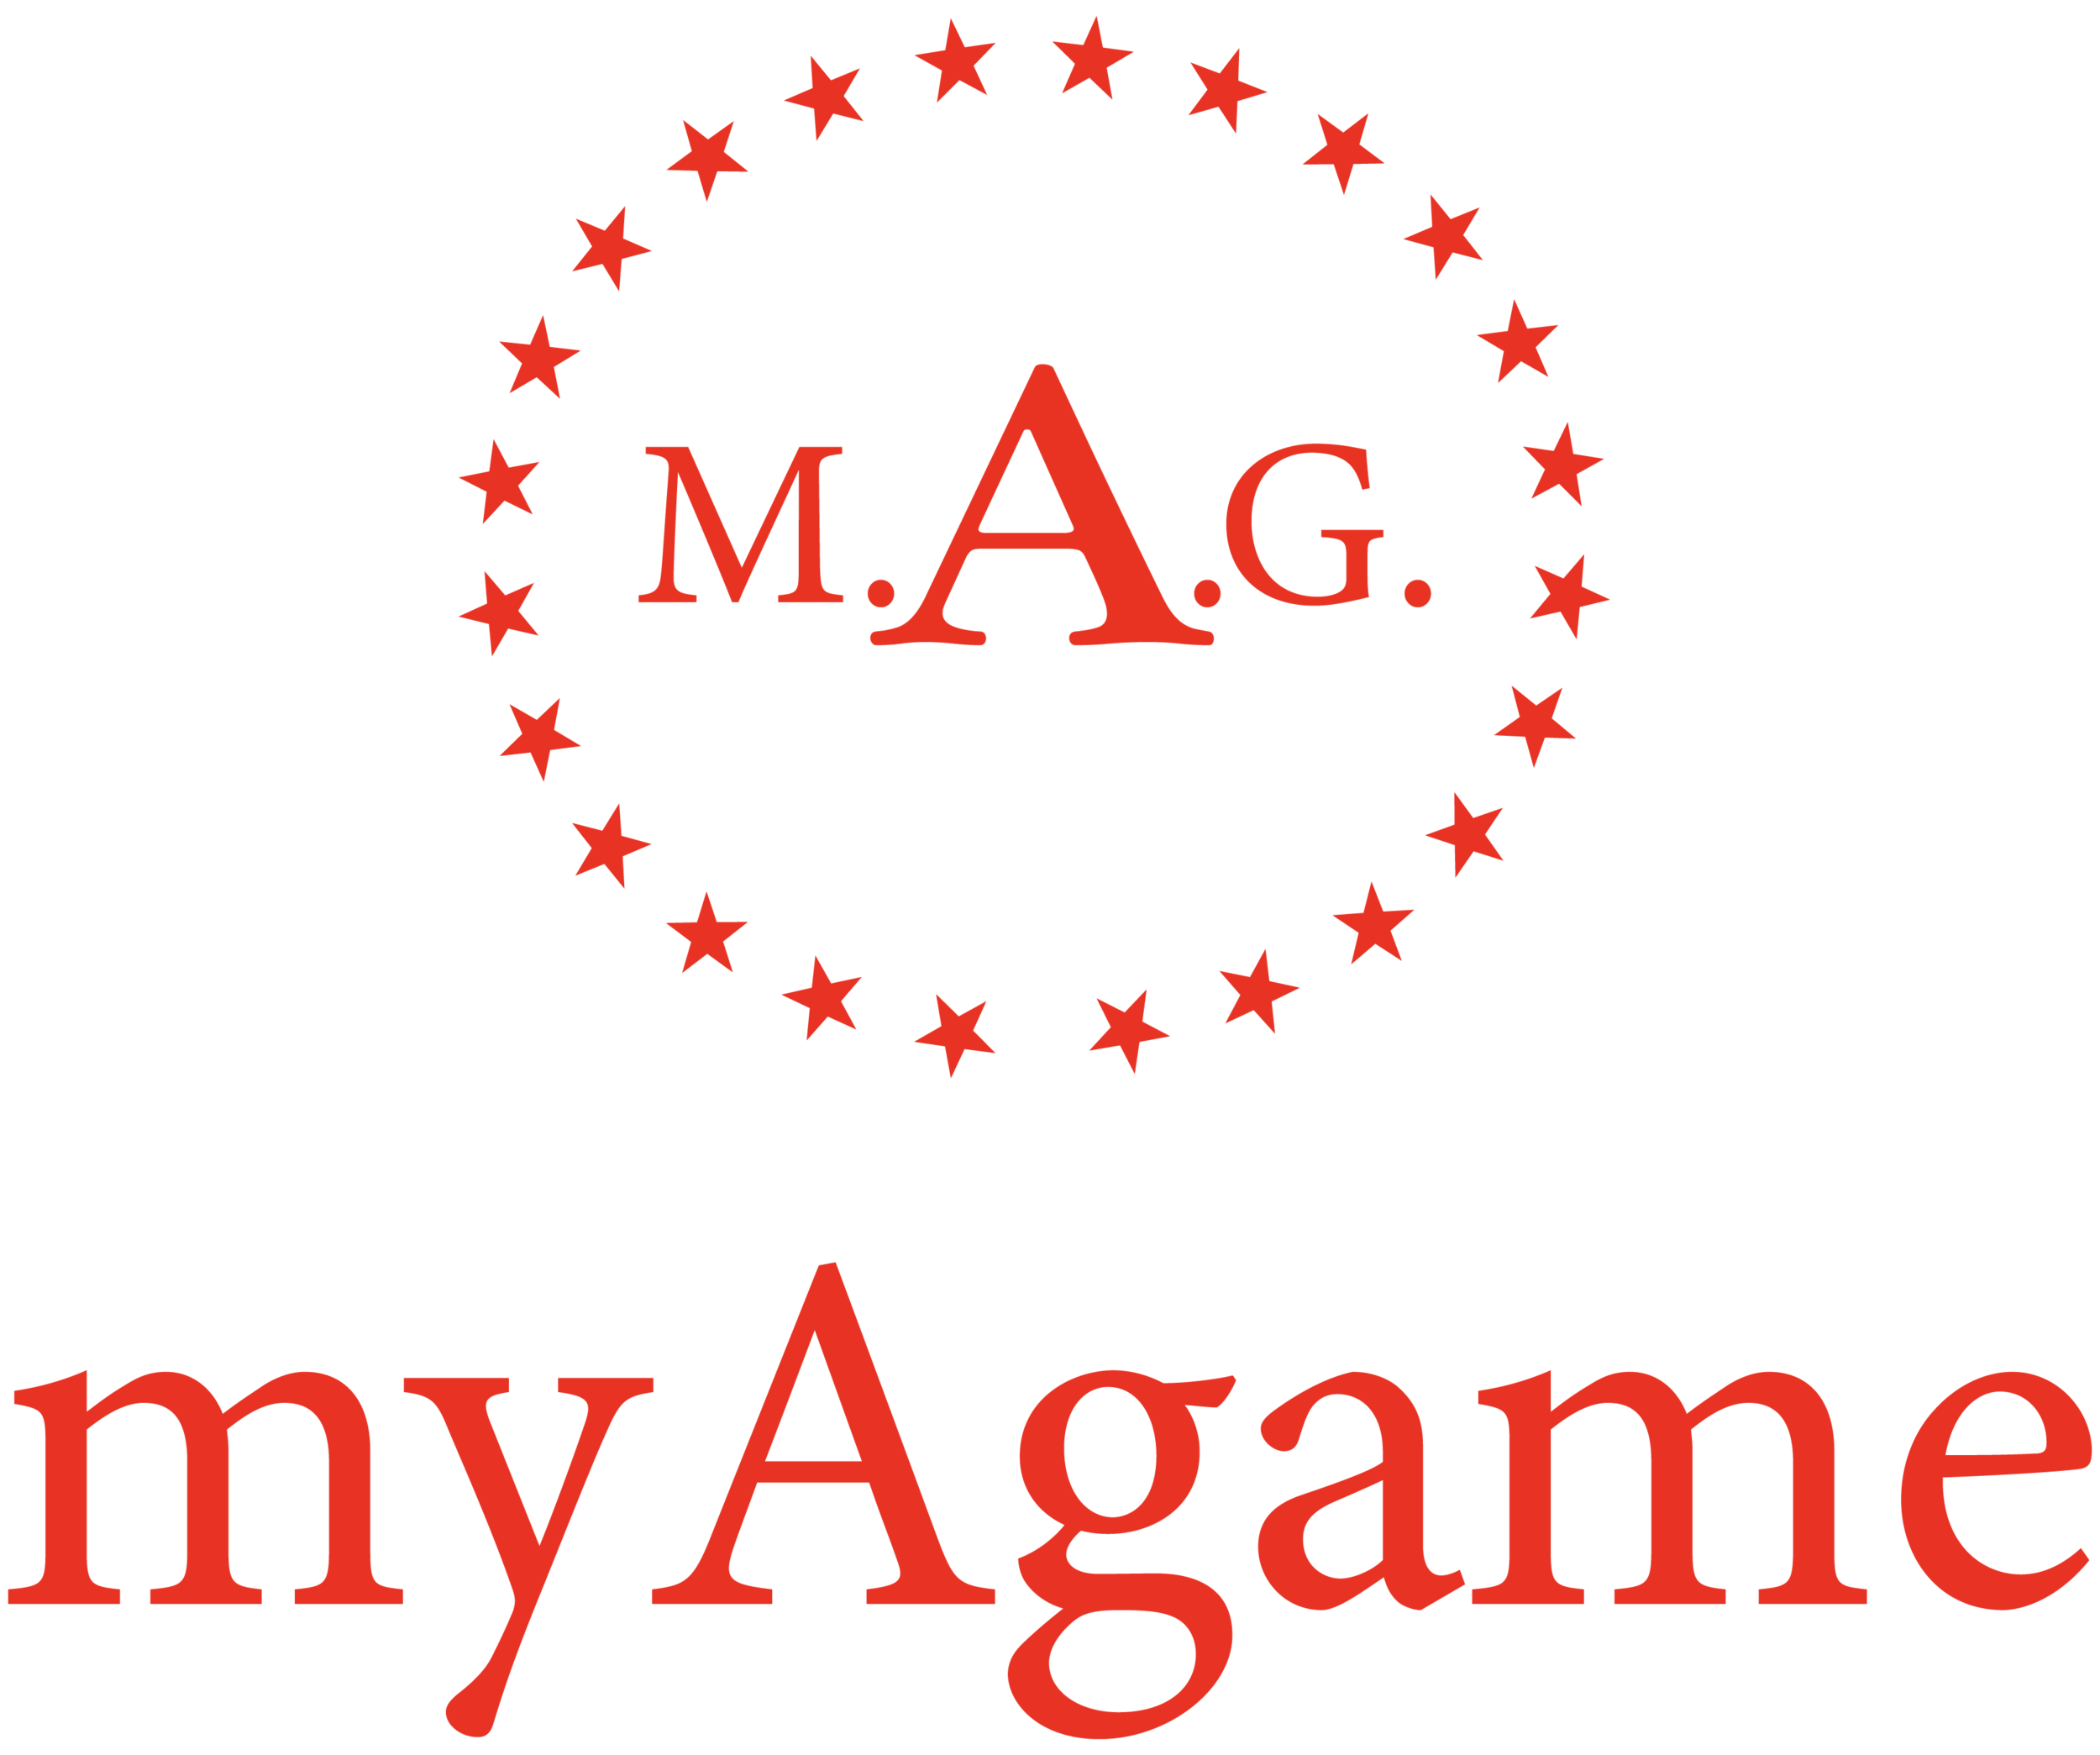 myAgame-full logo-red-01.png